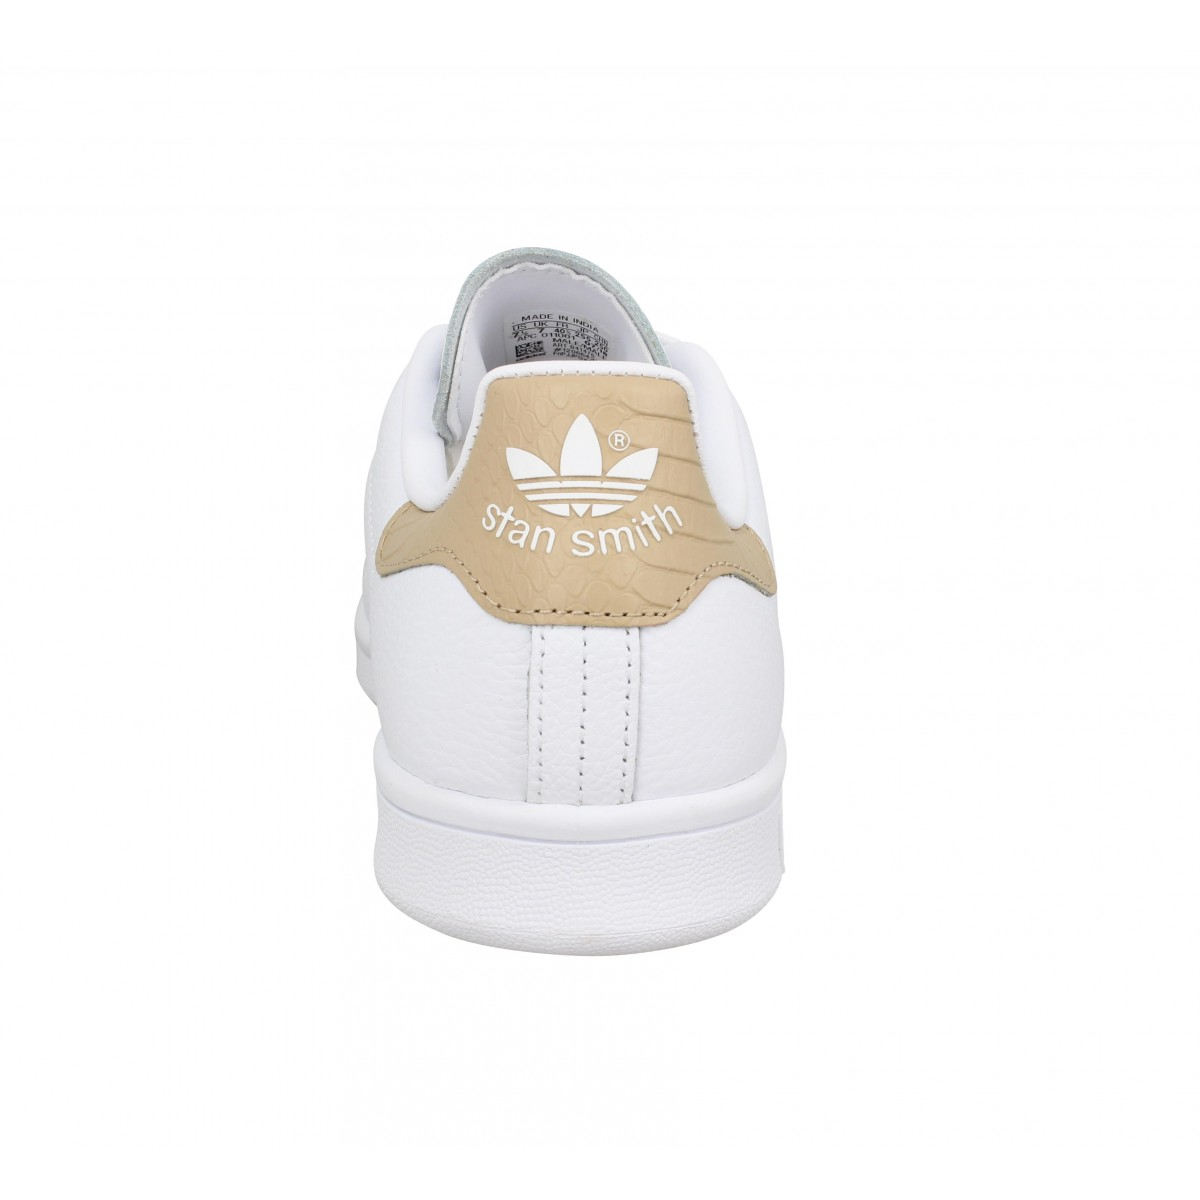 ADIDAS Stan Smith cuir Blanc Nude